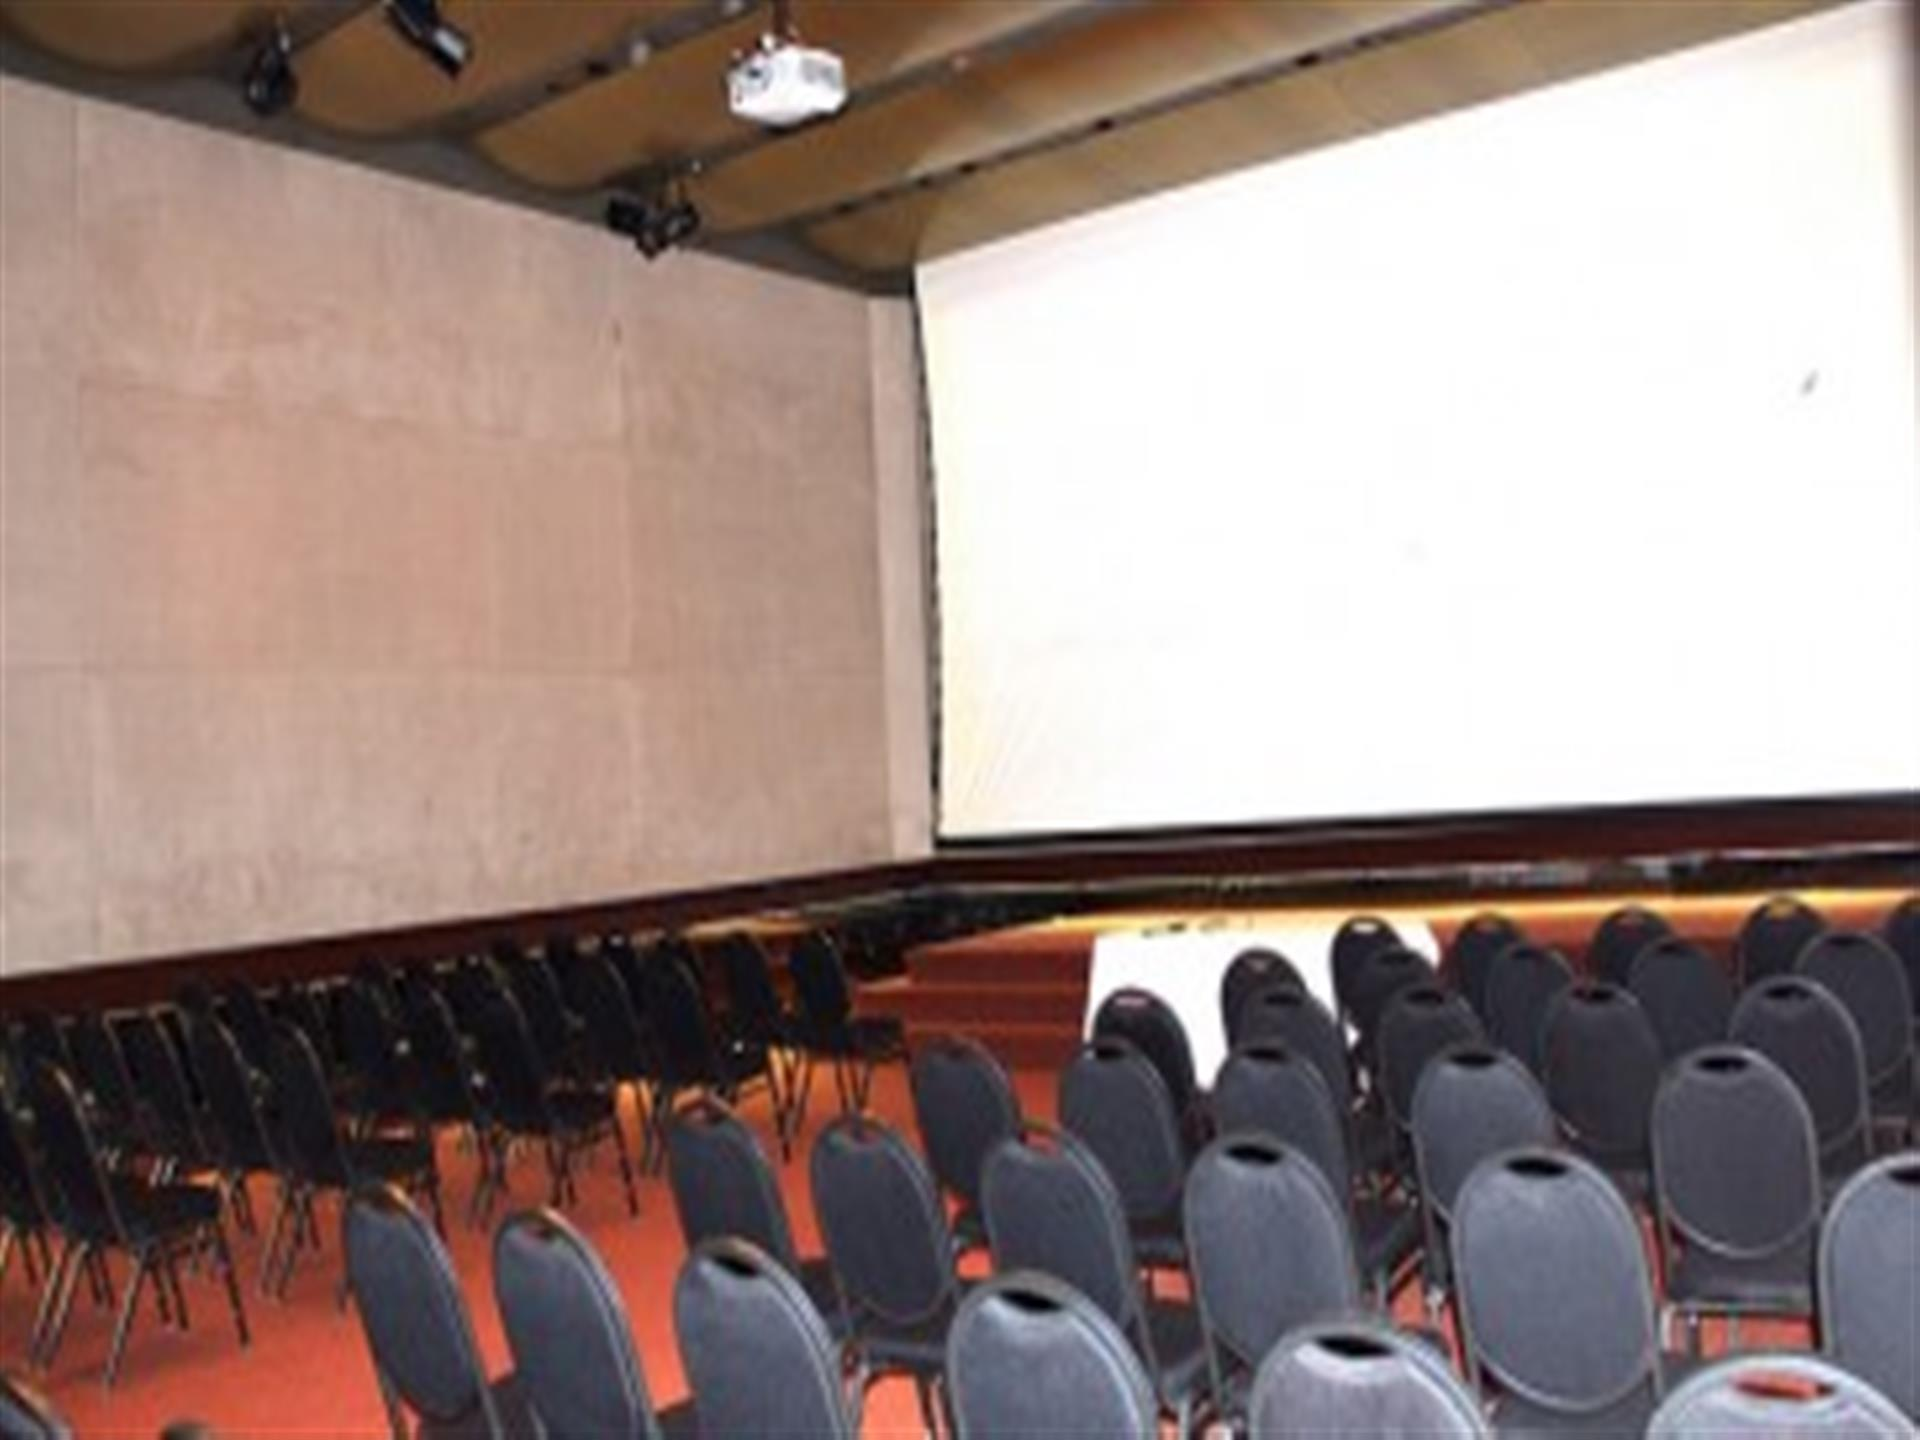 Conference room with rows of black chairs and large screen